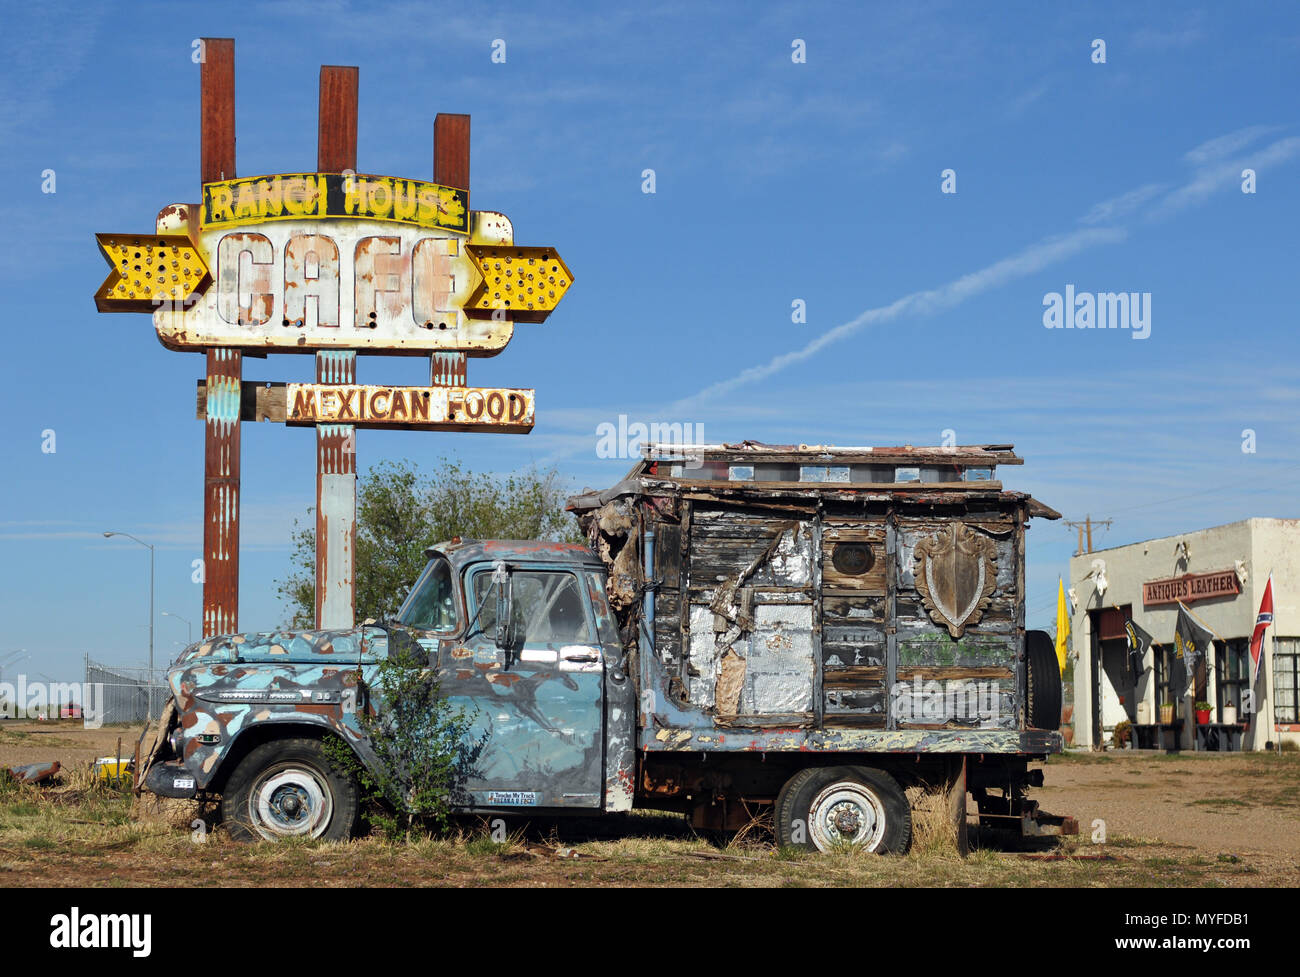 A dilapidated Chevrolet Apache truck sits in front of the rusting neon Ranch House Cafe sign in the Route 66 town of Tucumcari, New Mexico. - Stock Image